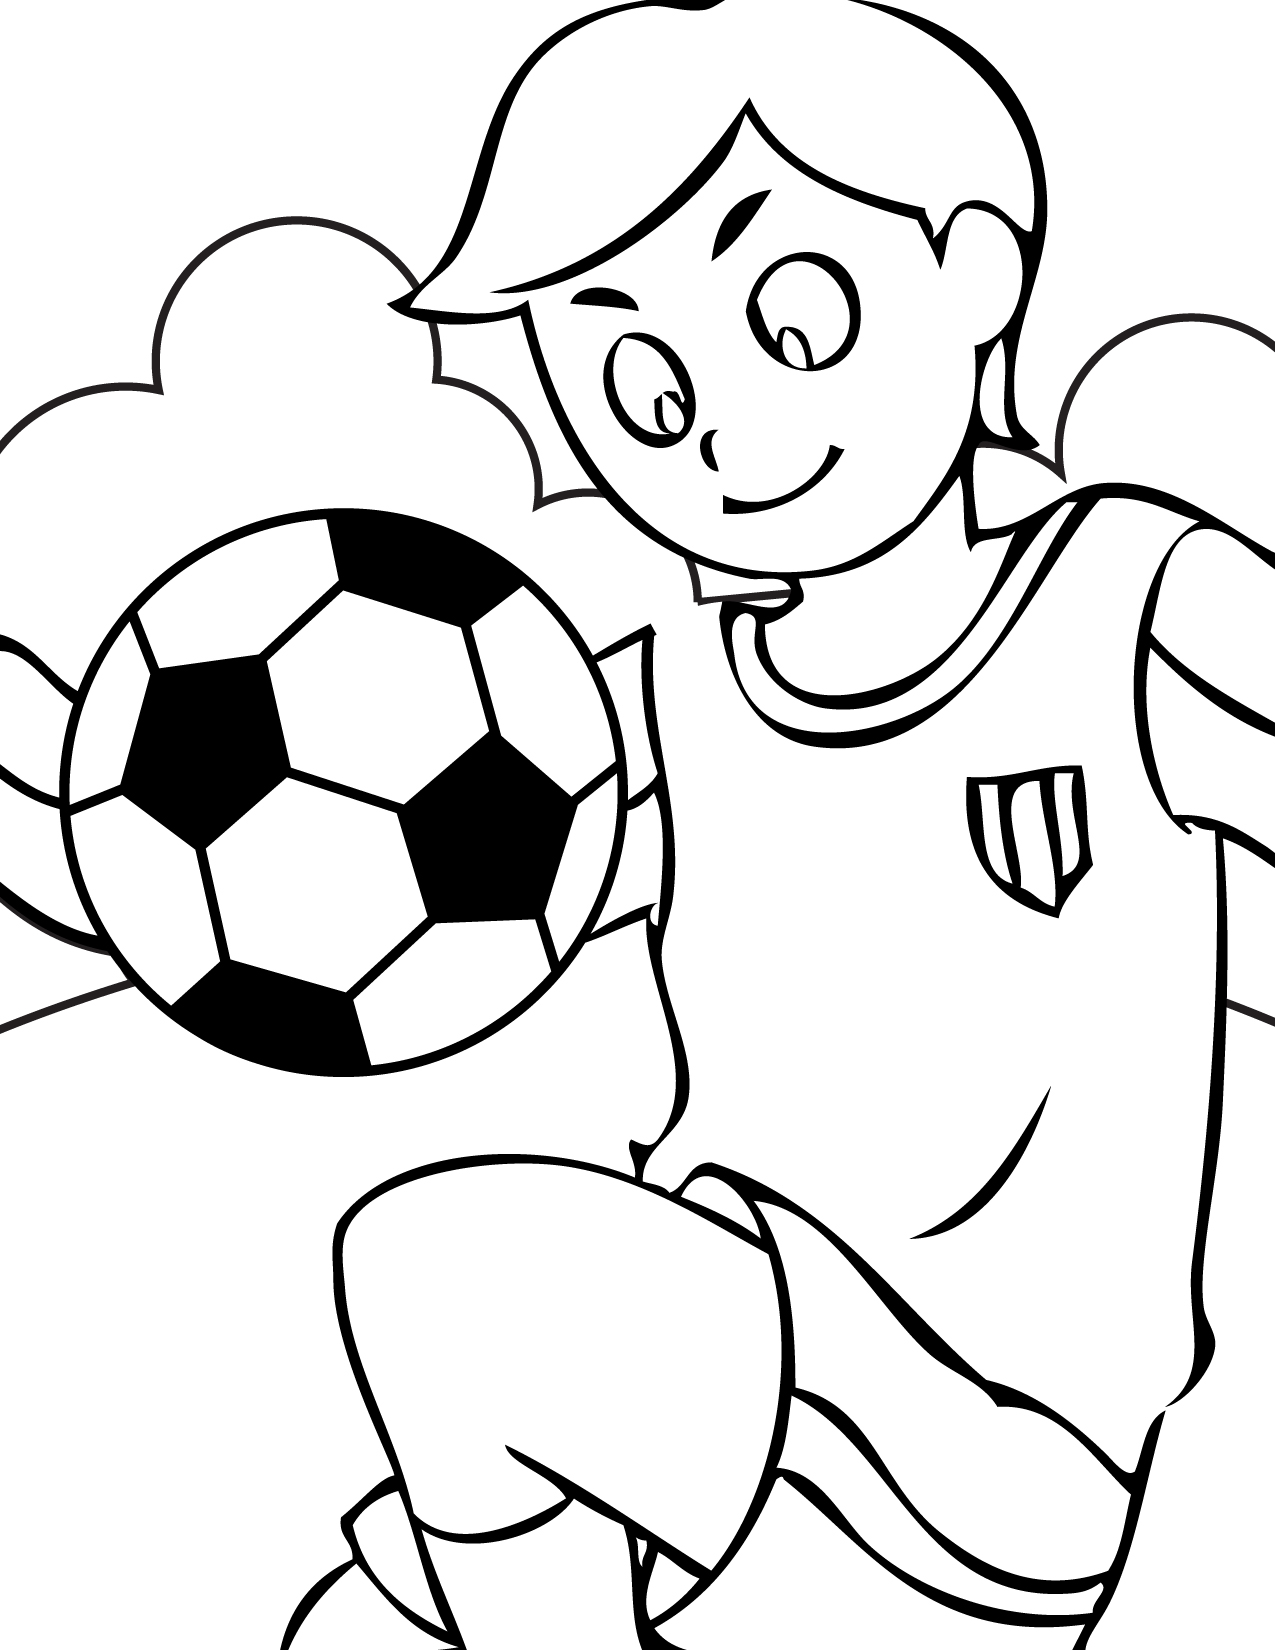 free printable sports coloring pages for kids - Colouring Pages For Kids